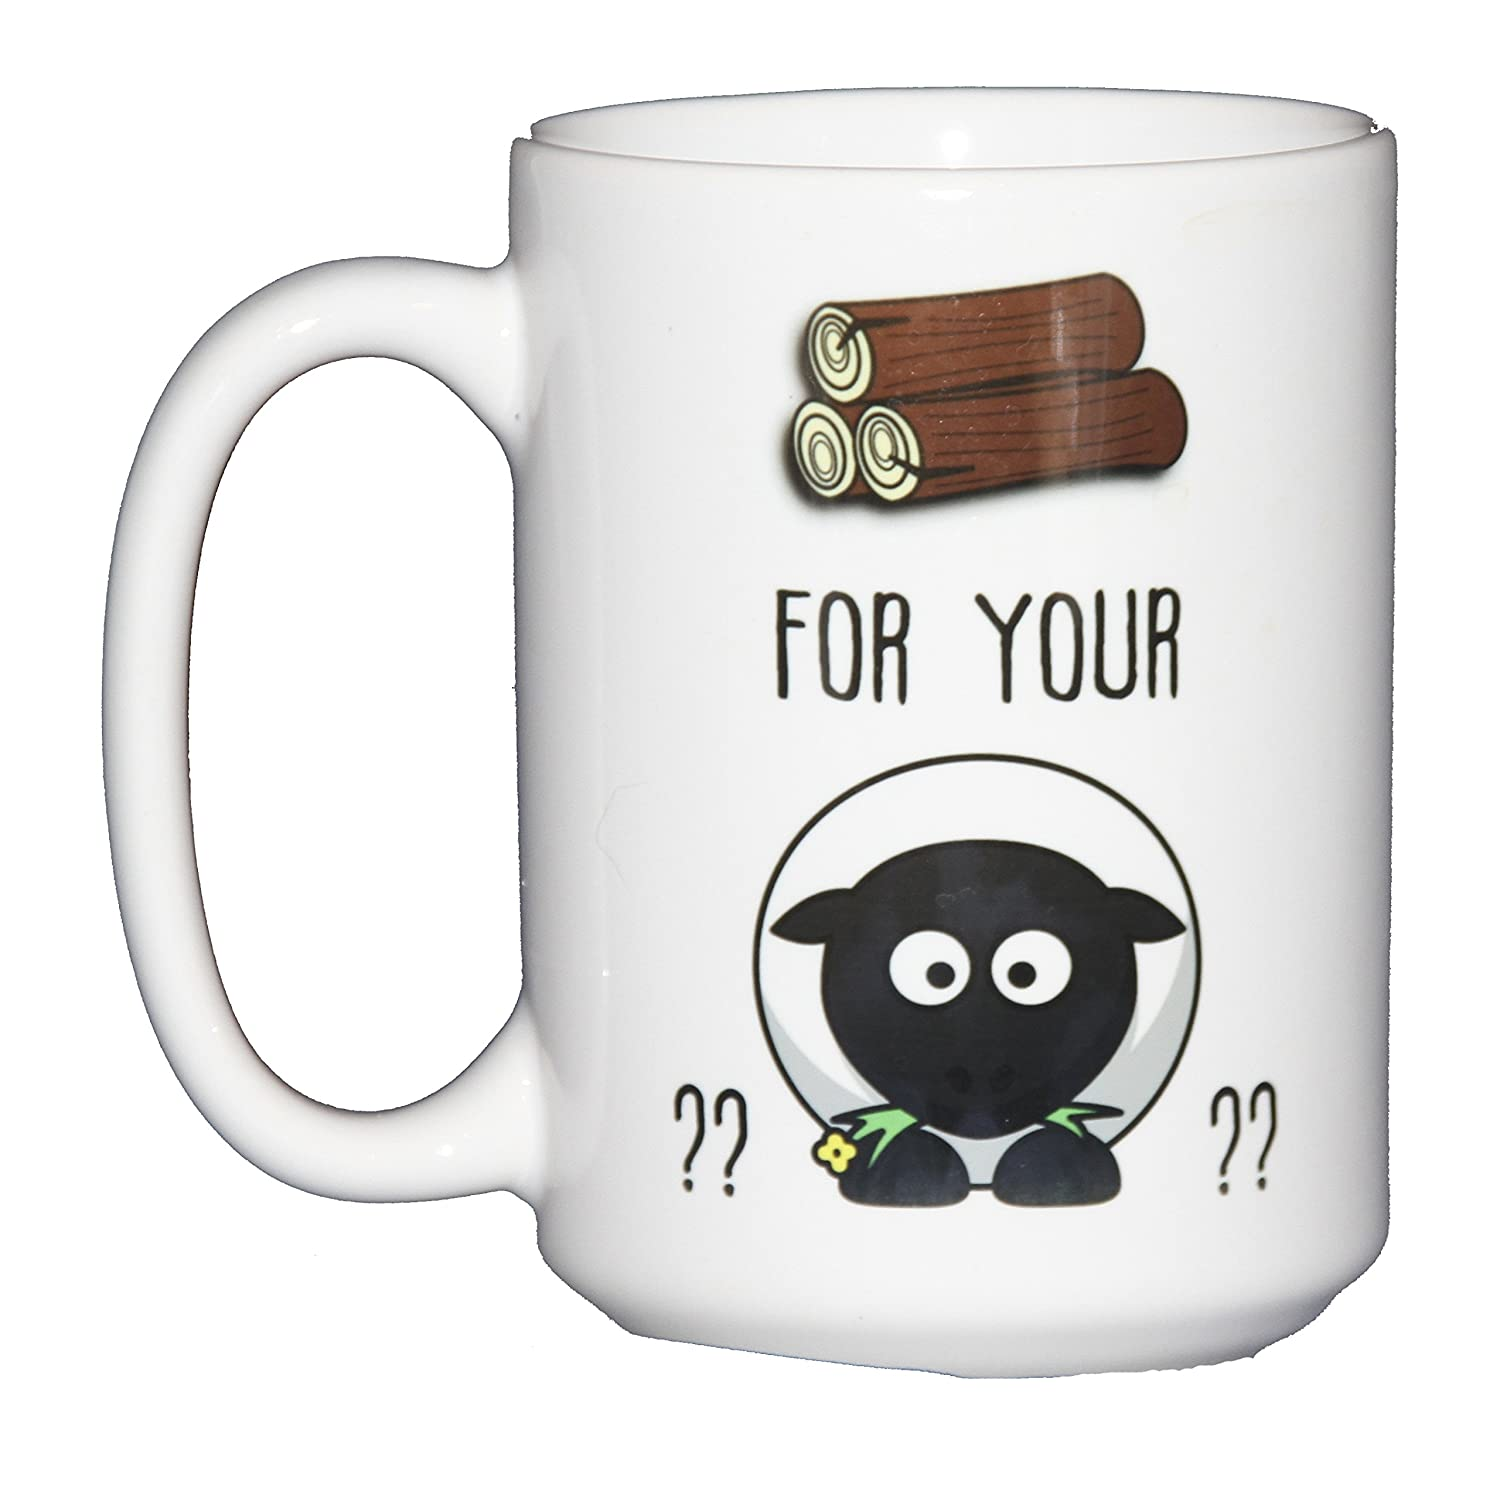 Wood for Your Sheep - Funny Coffee Mug for Board Game Geeks